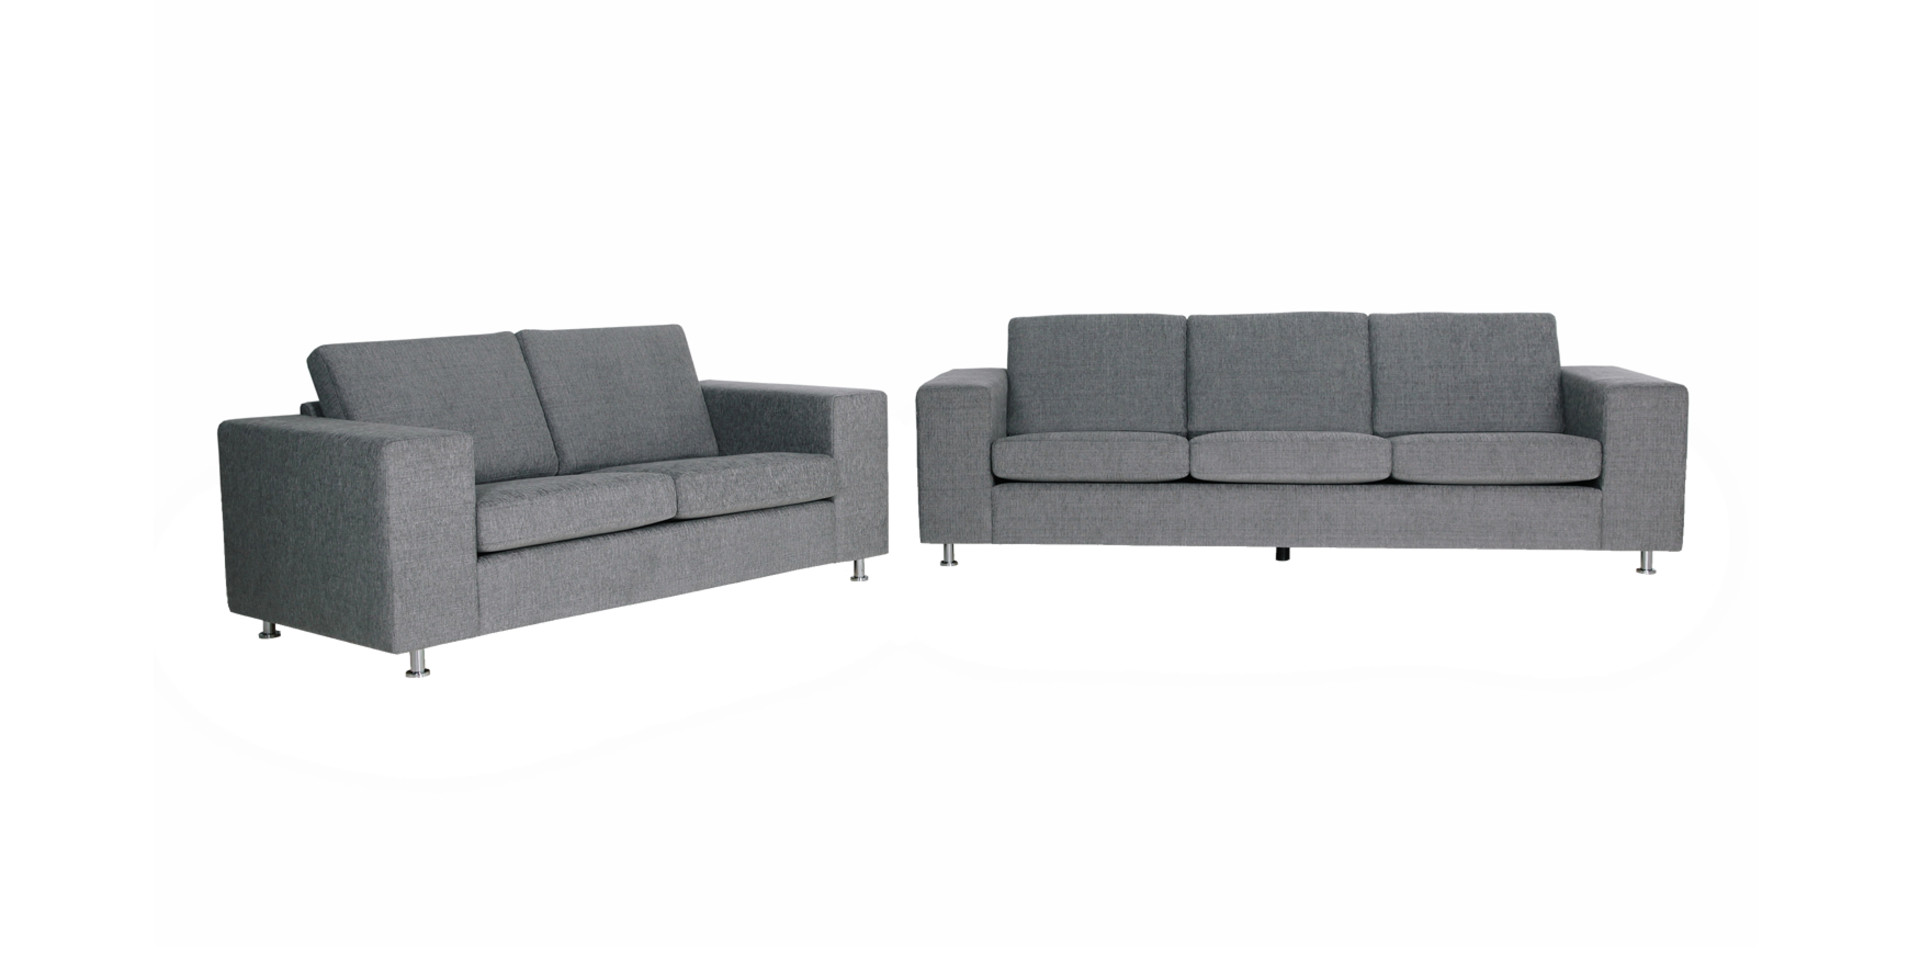 sits-palma-canape-_3seater_2seater_veraam1c9grey_1